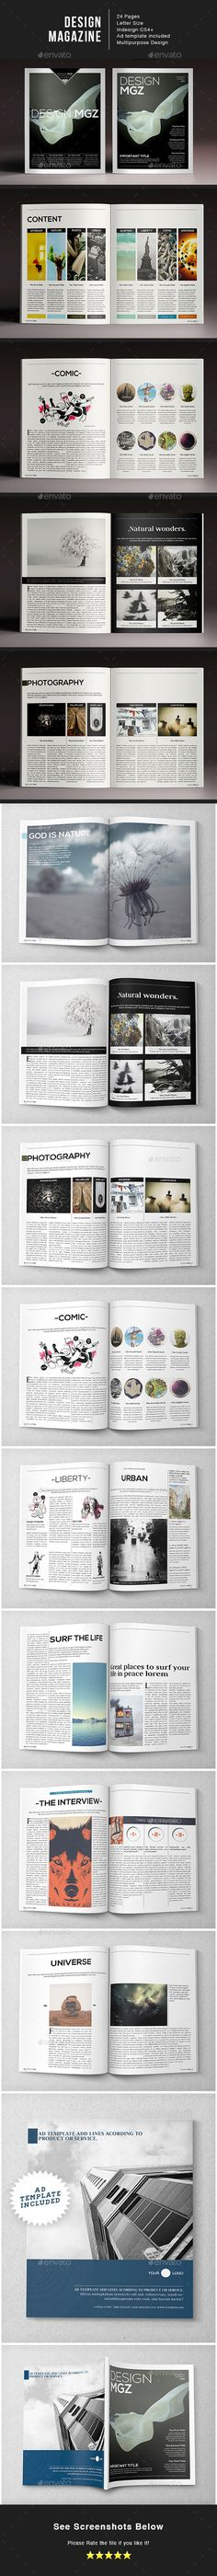 Indesign Magazine Template | Indesign magazine templates and Print ...